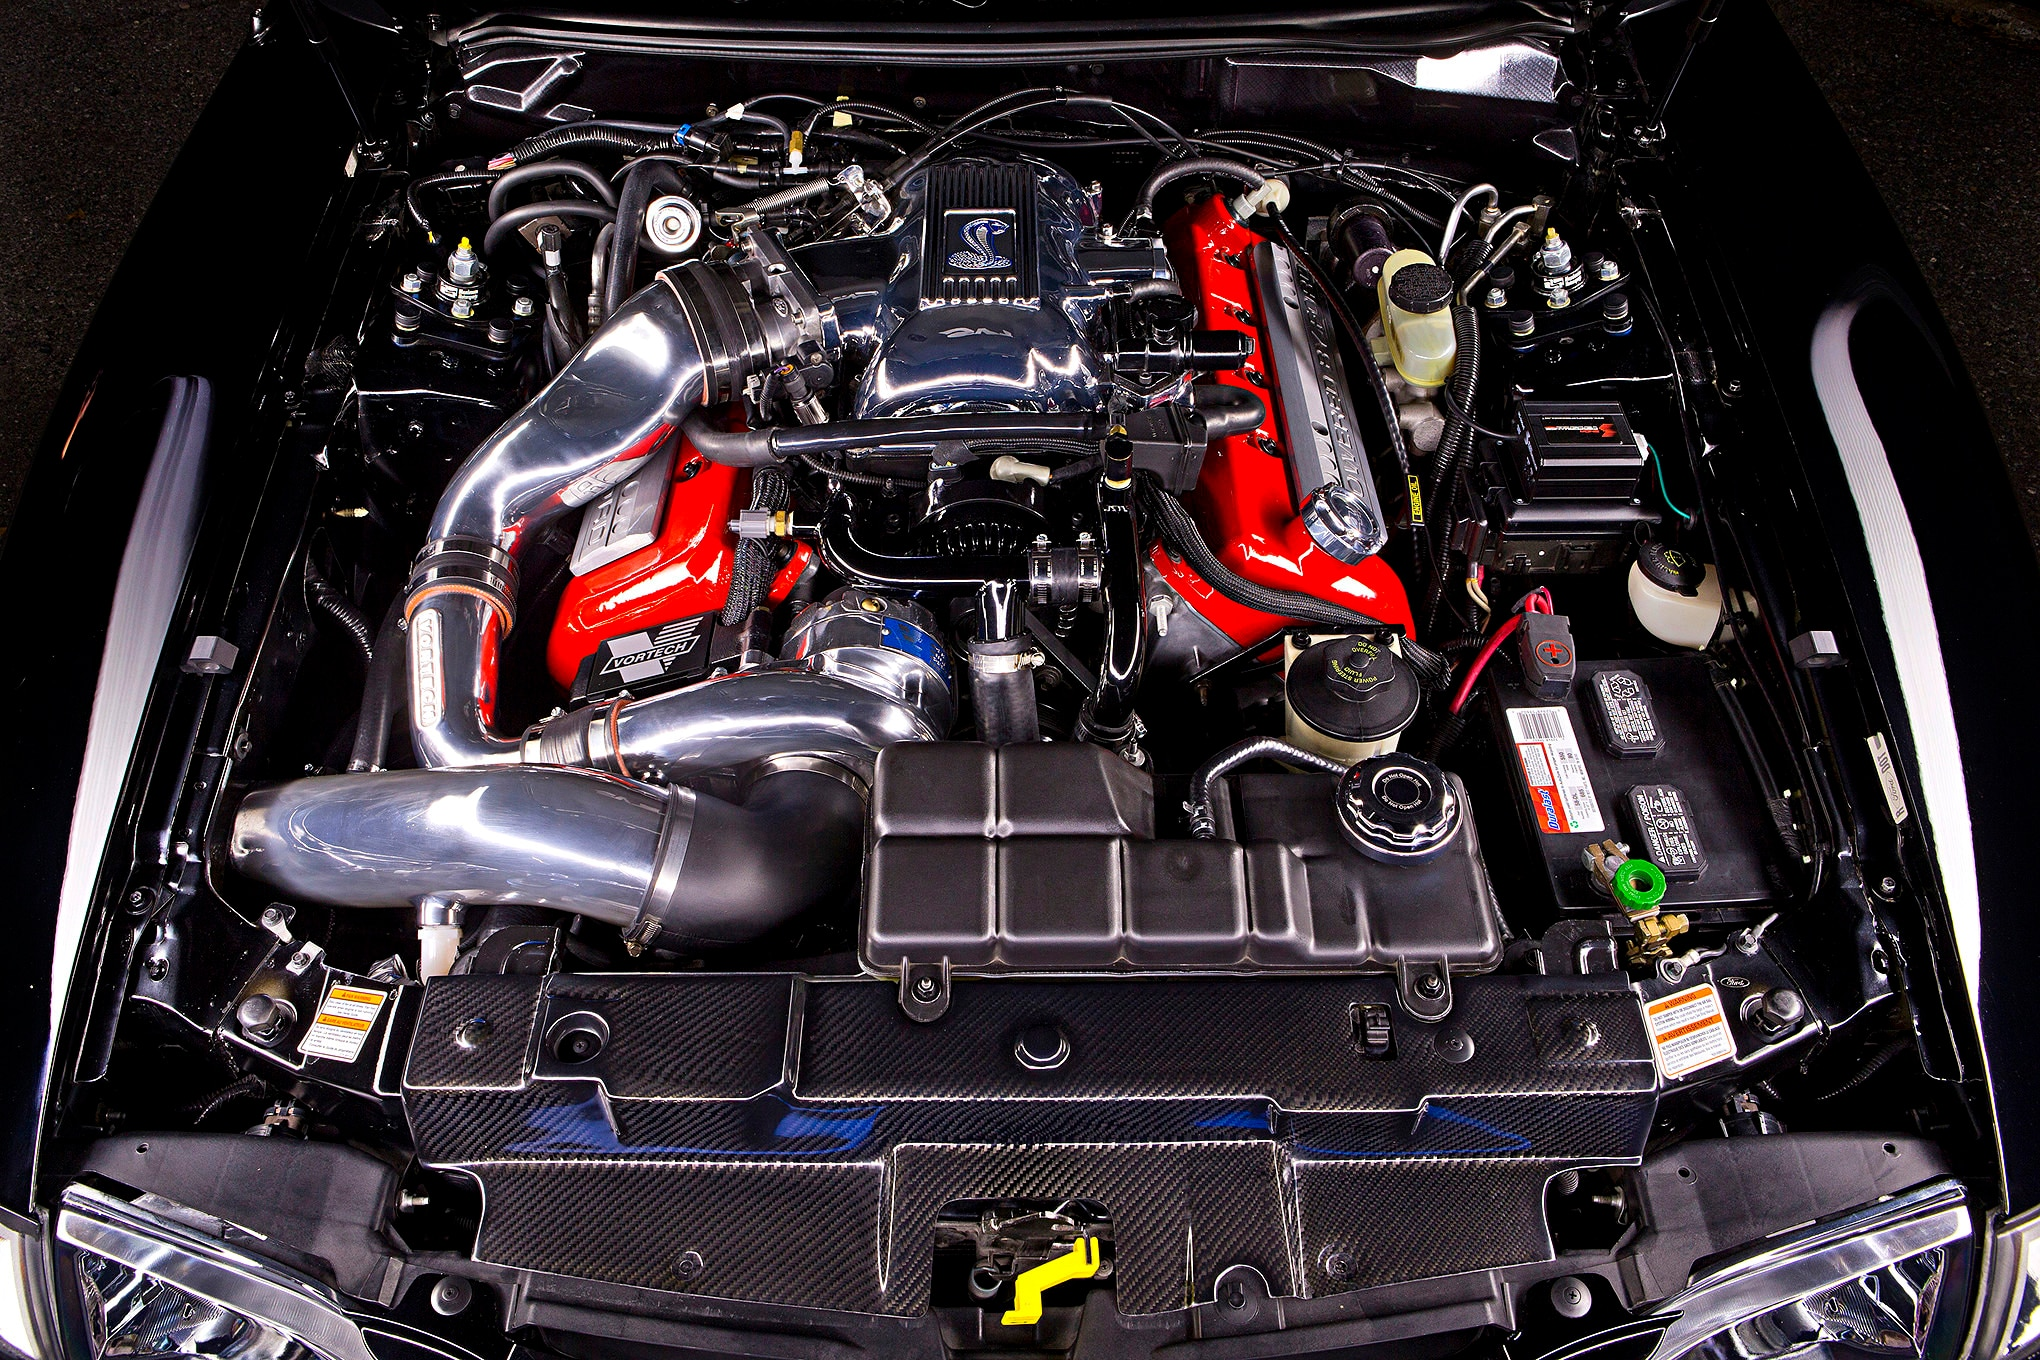 1998 Ford Mustang Cobra Engine